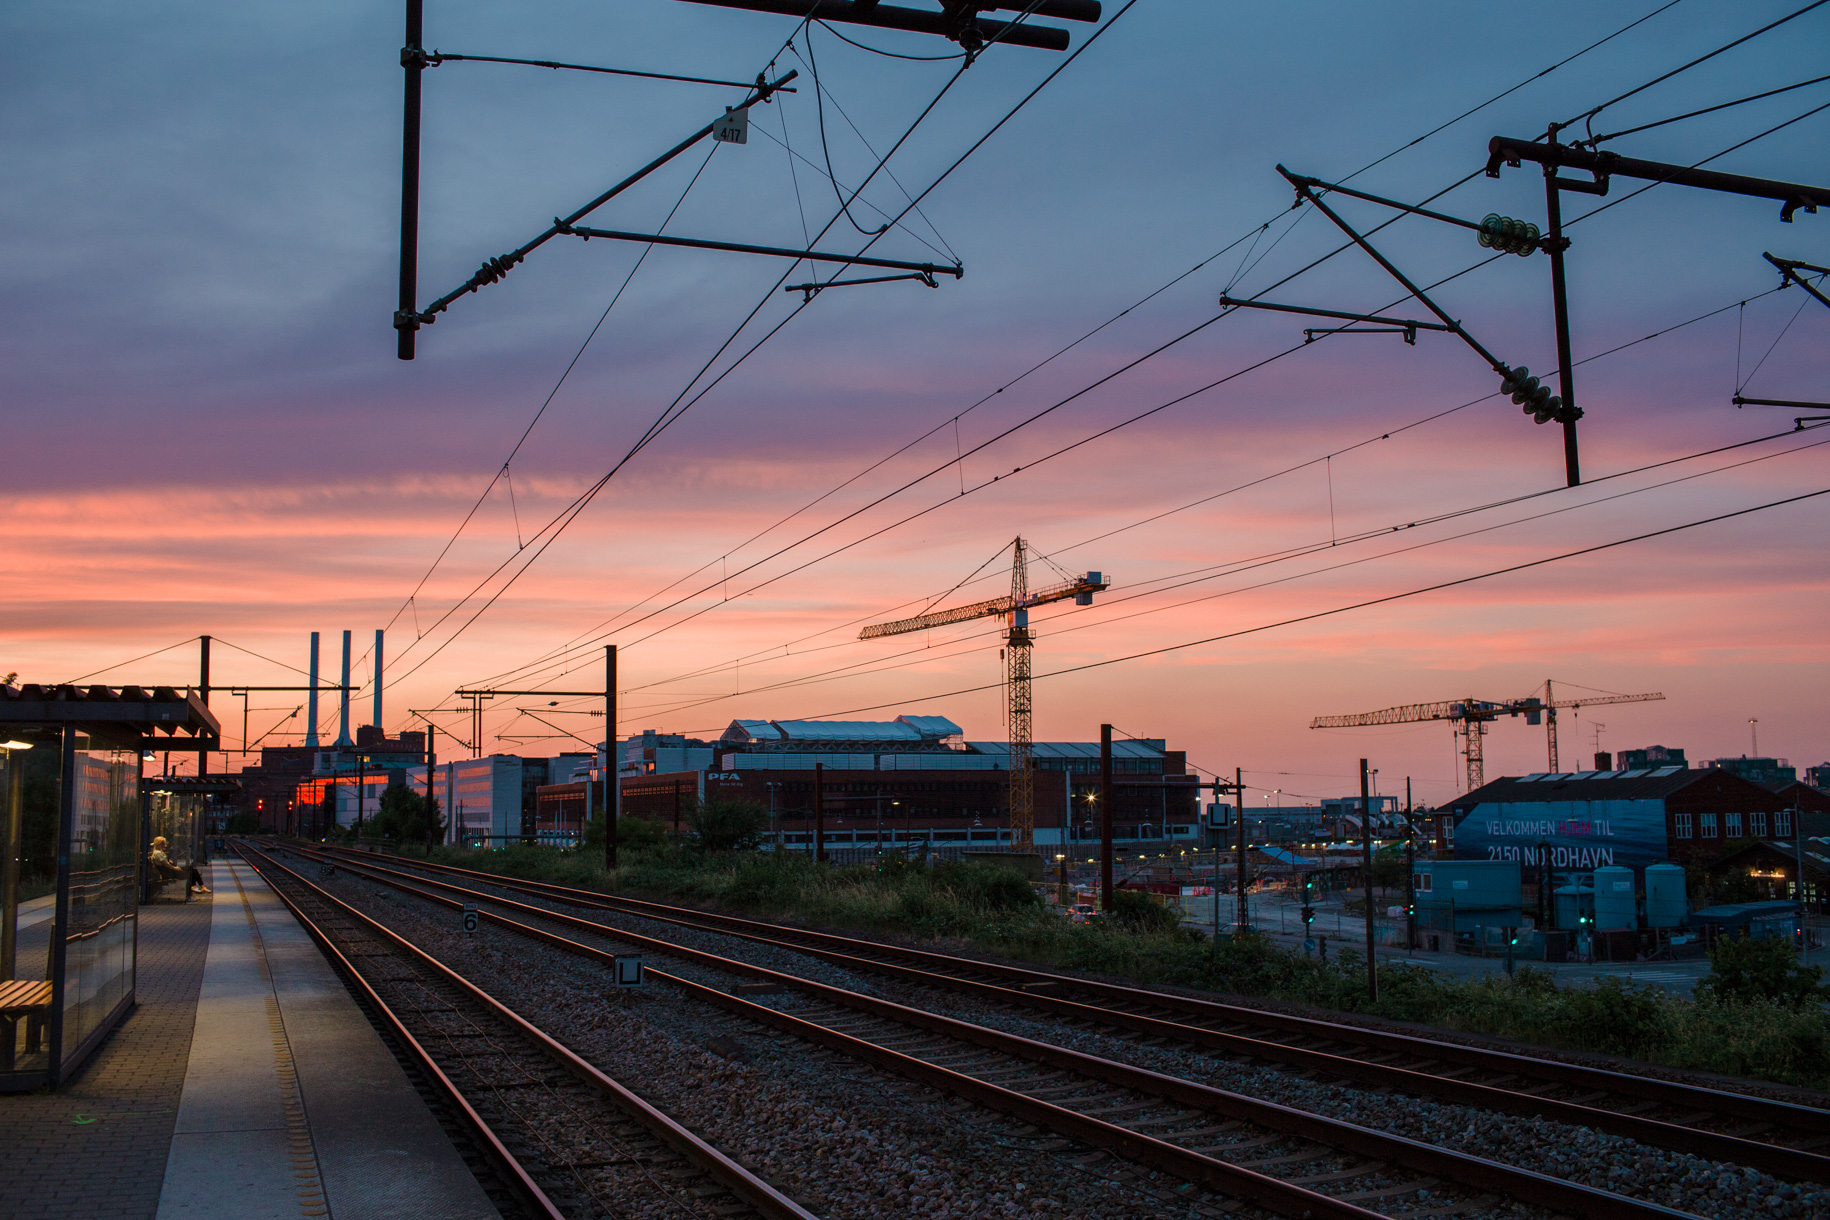 Sunset over Nordhavn Station in Copenhagen, Denmark